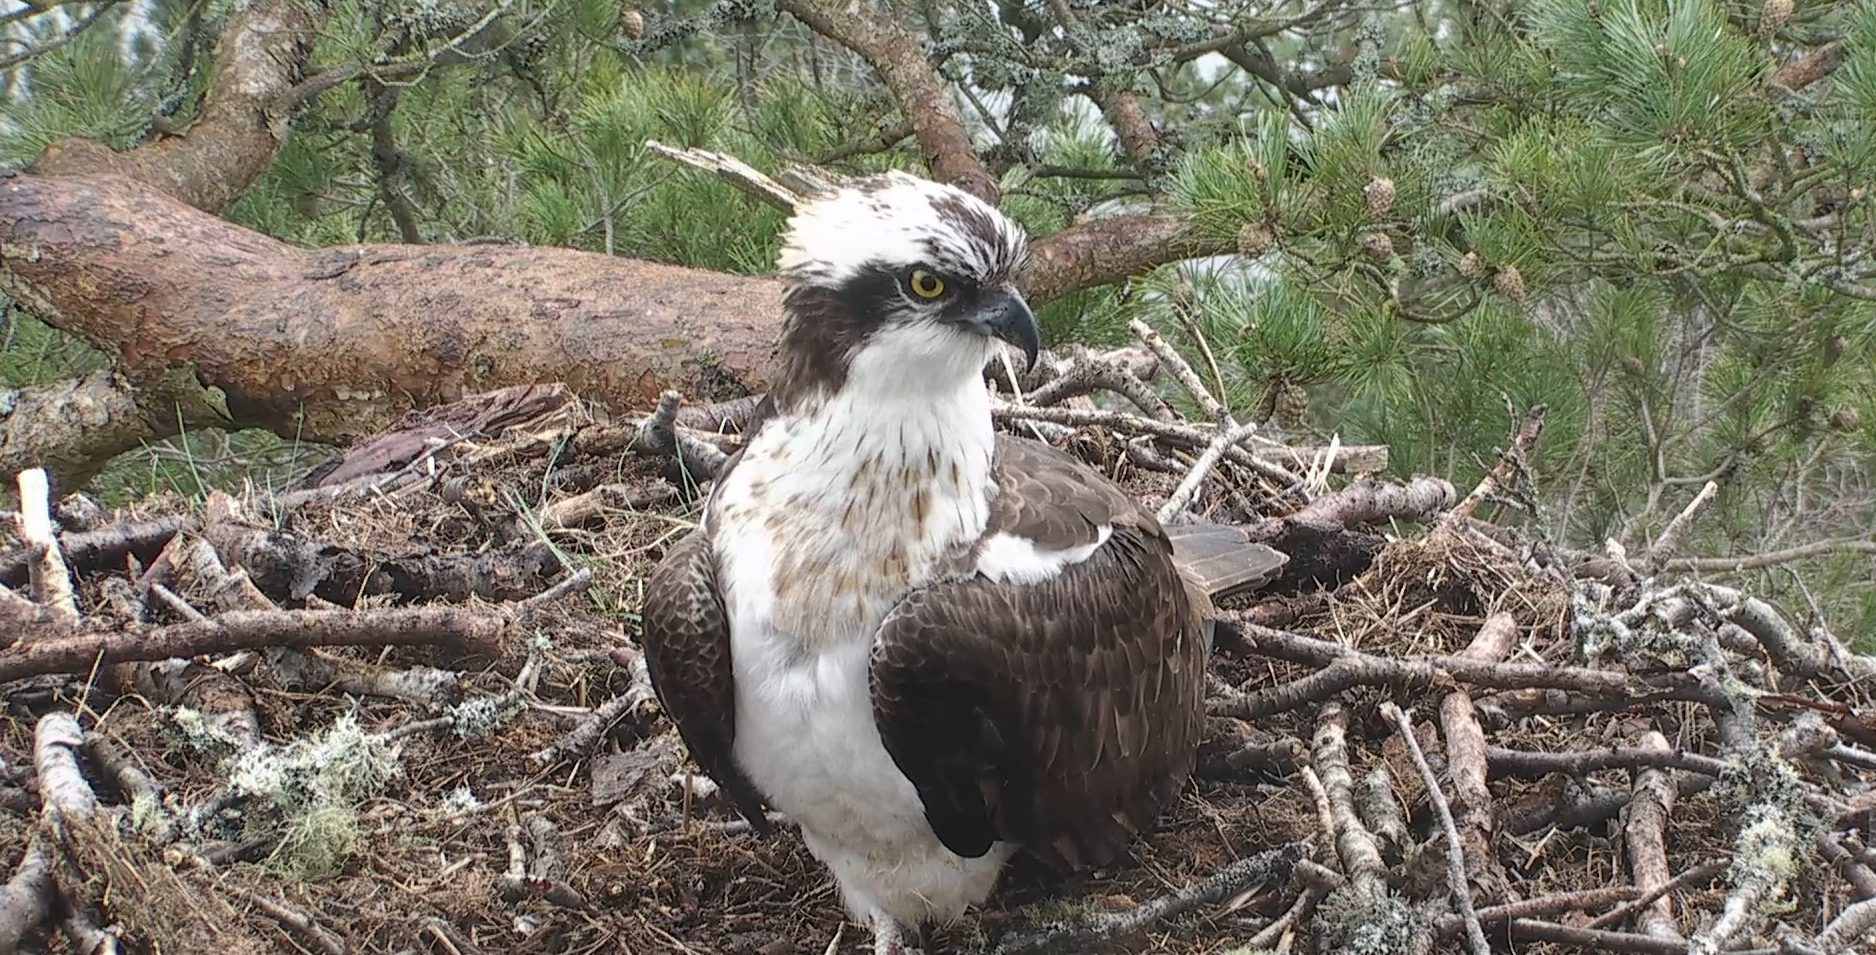 The reserve webcam shows the osprey, believed to be LM12, has returned.